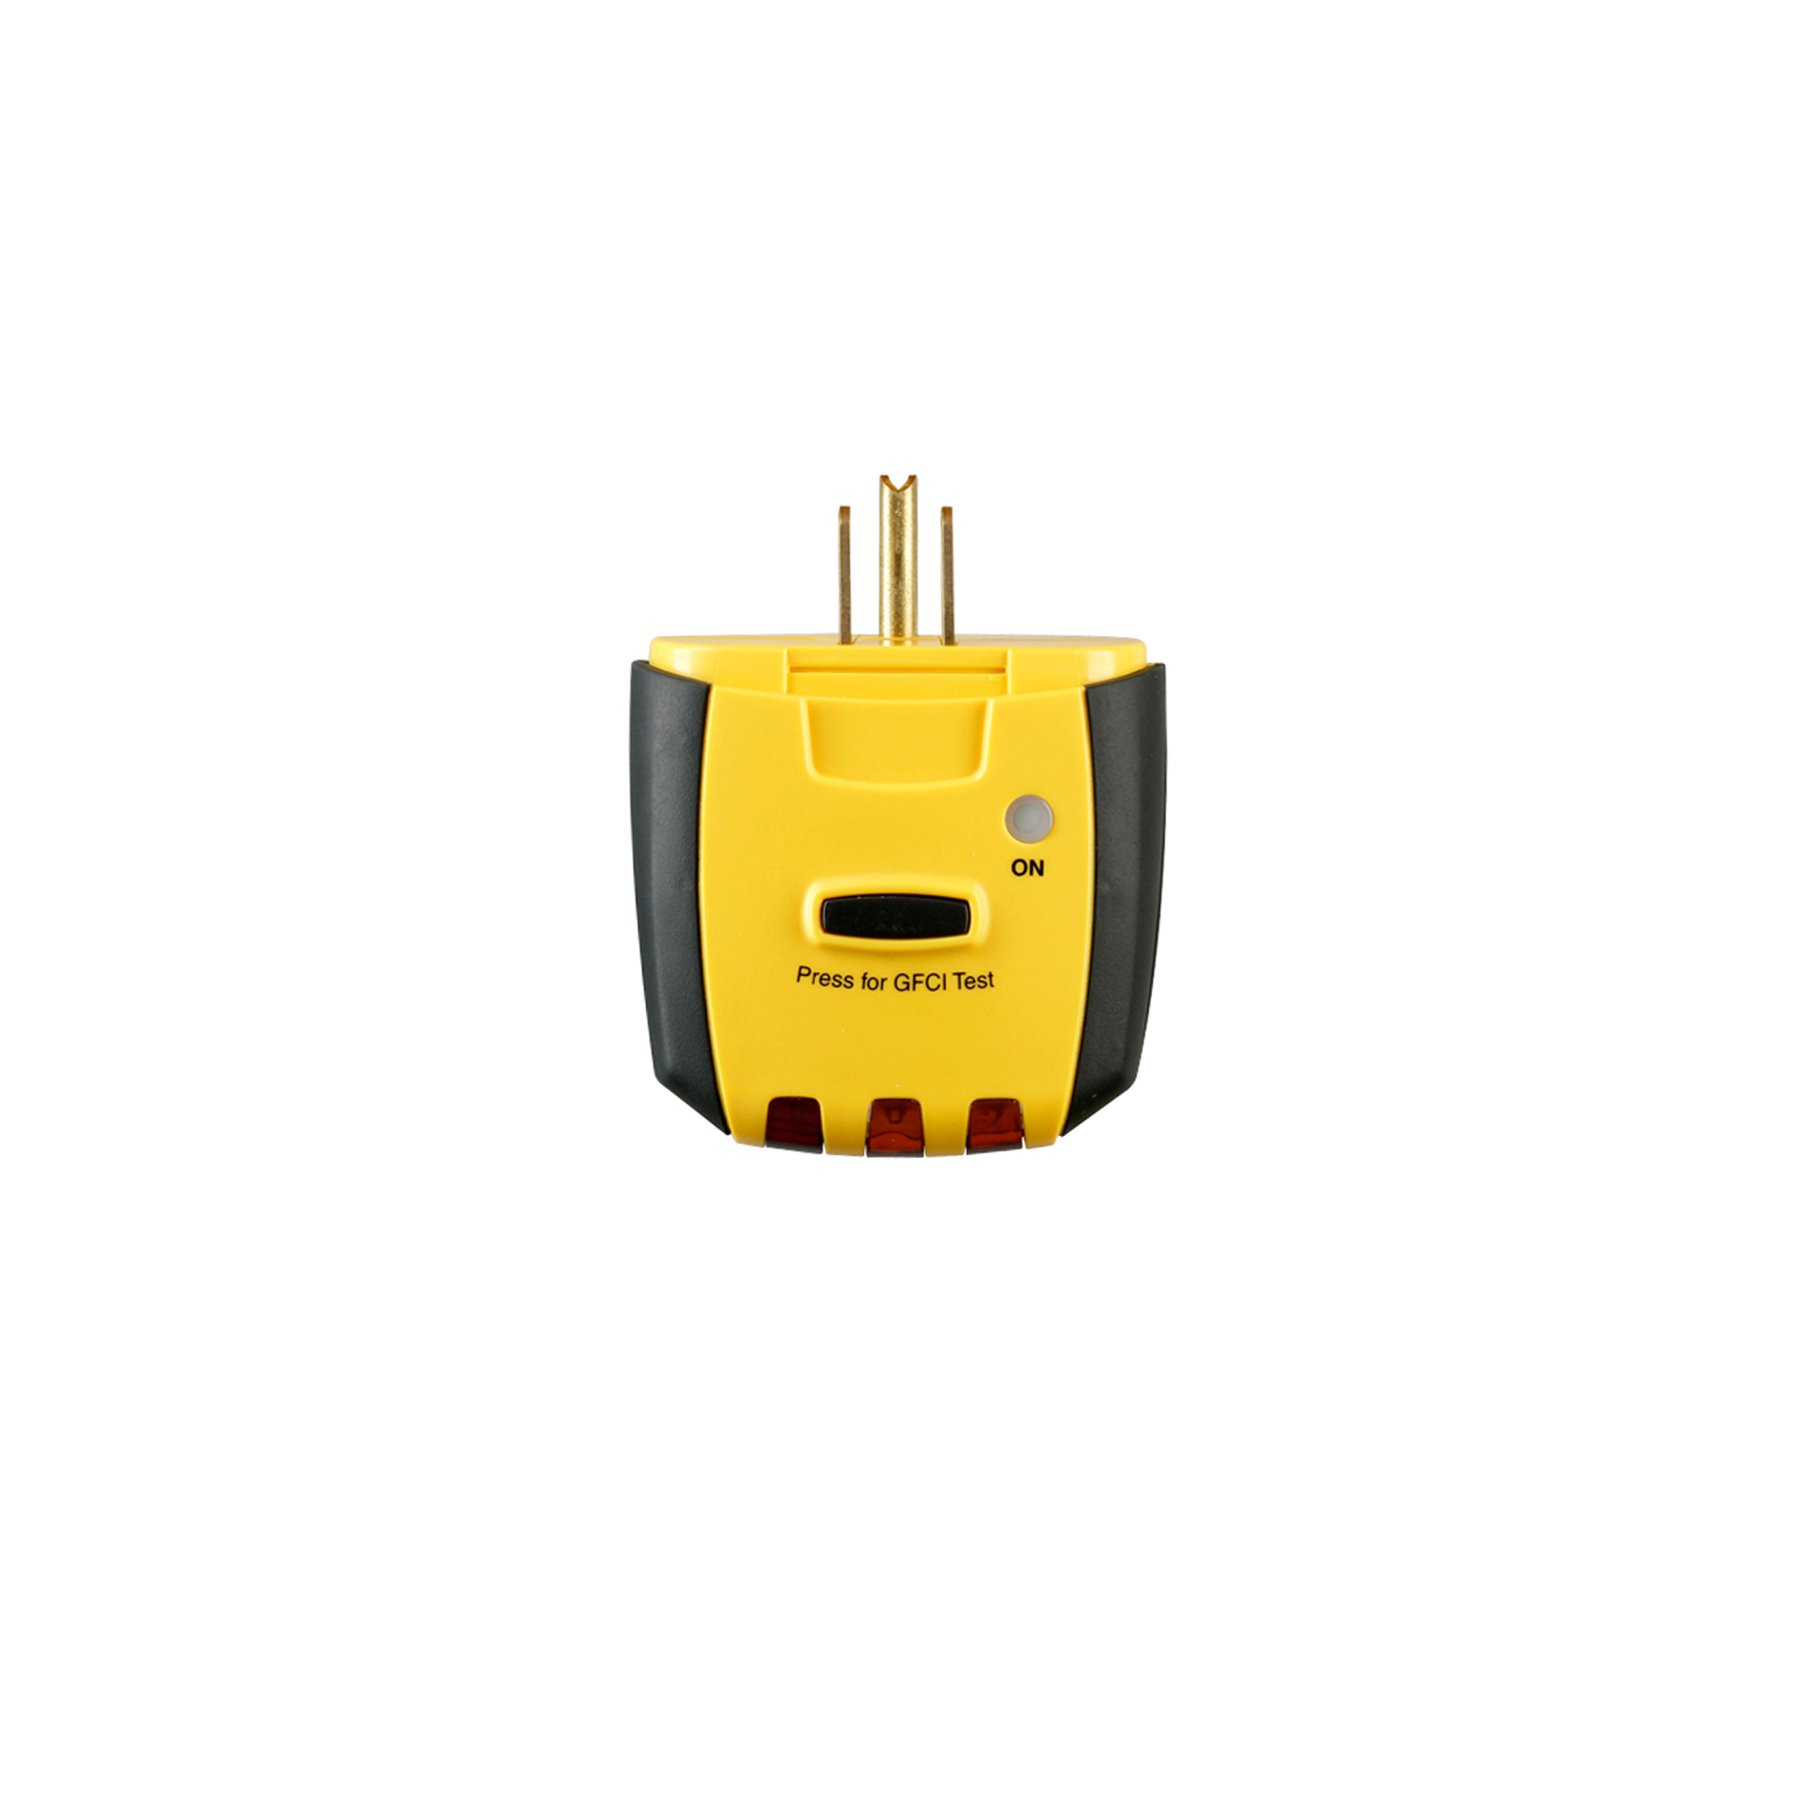 Sperry Instruments CS61200P Electrical Circuit Breaker Finder Kit, 120V AC, 60Hz, Includes: CS61200AS Light and Switch, 2 Pc Kit by Sperry Instruments (Image #4)